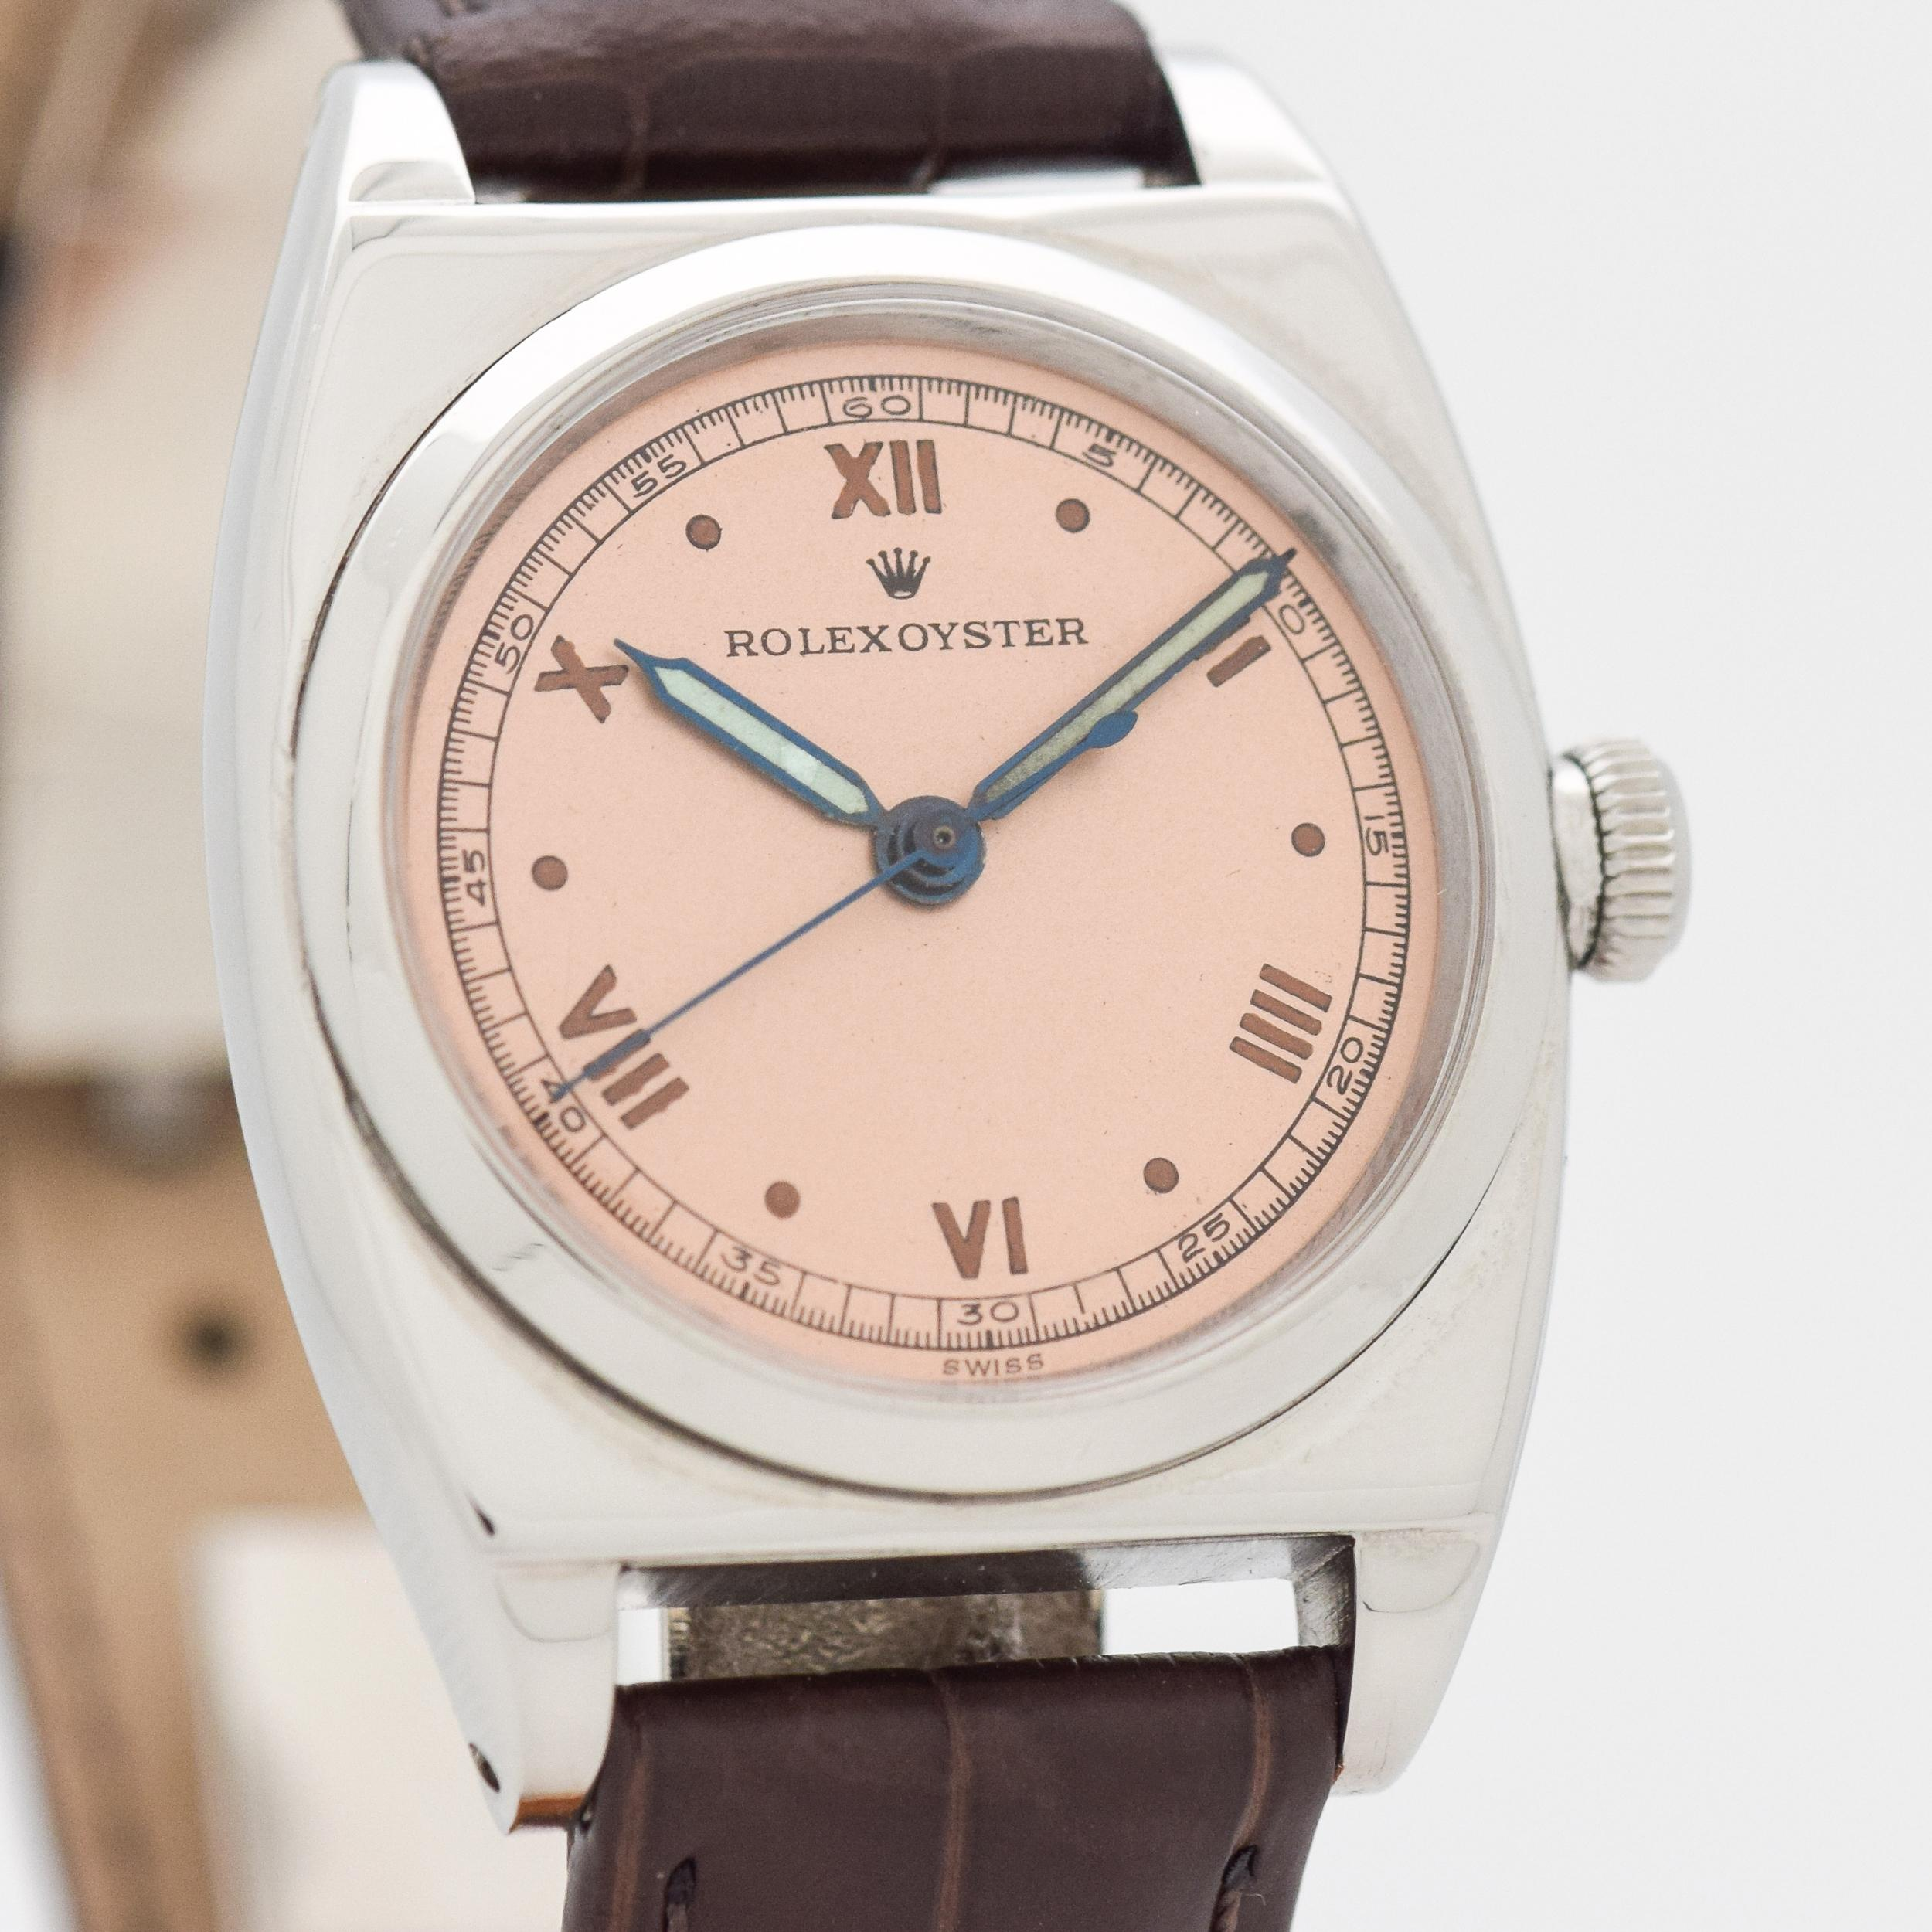 Vintage Rolex Viceroy Reference 3116 Watch, 1940 at 1stdibs